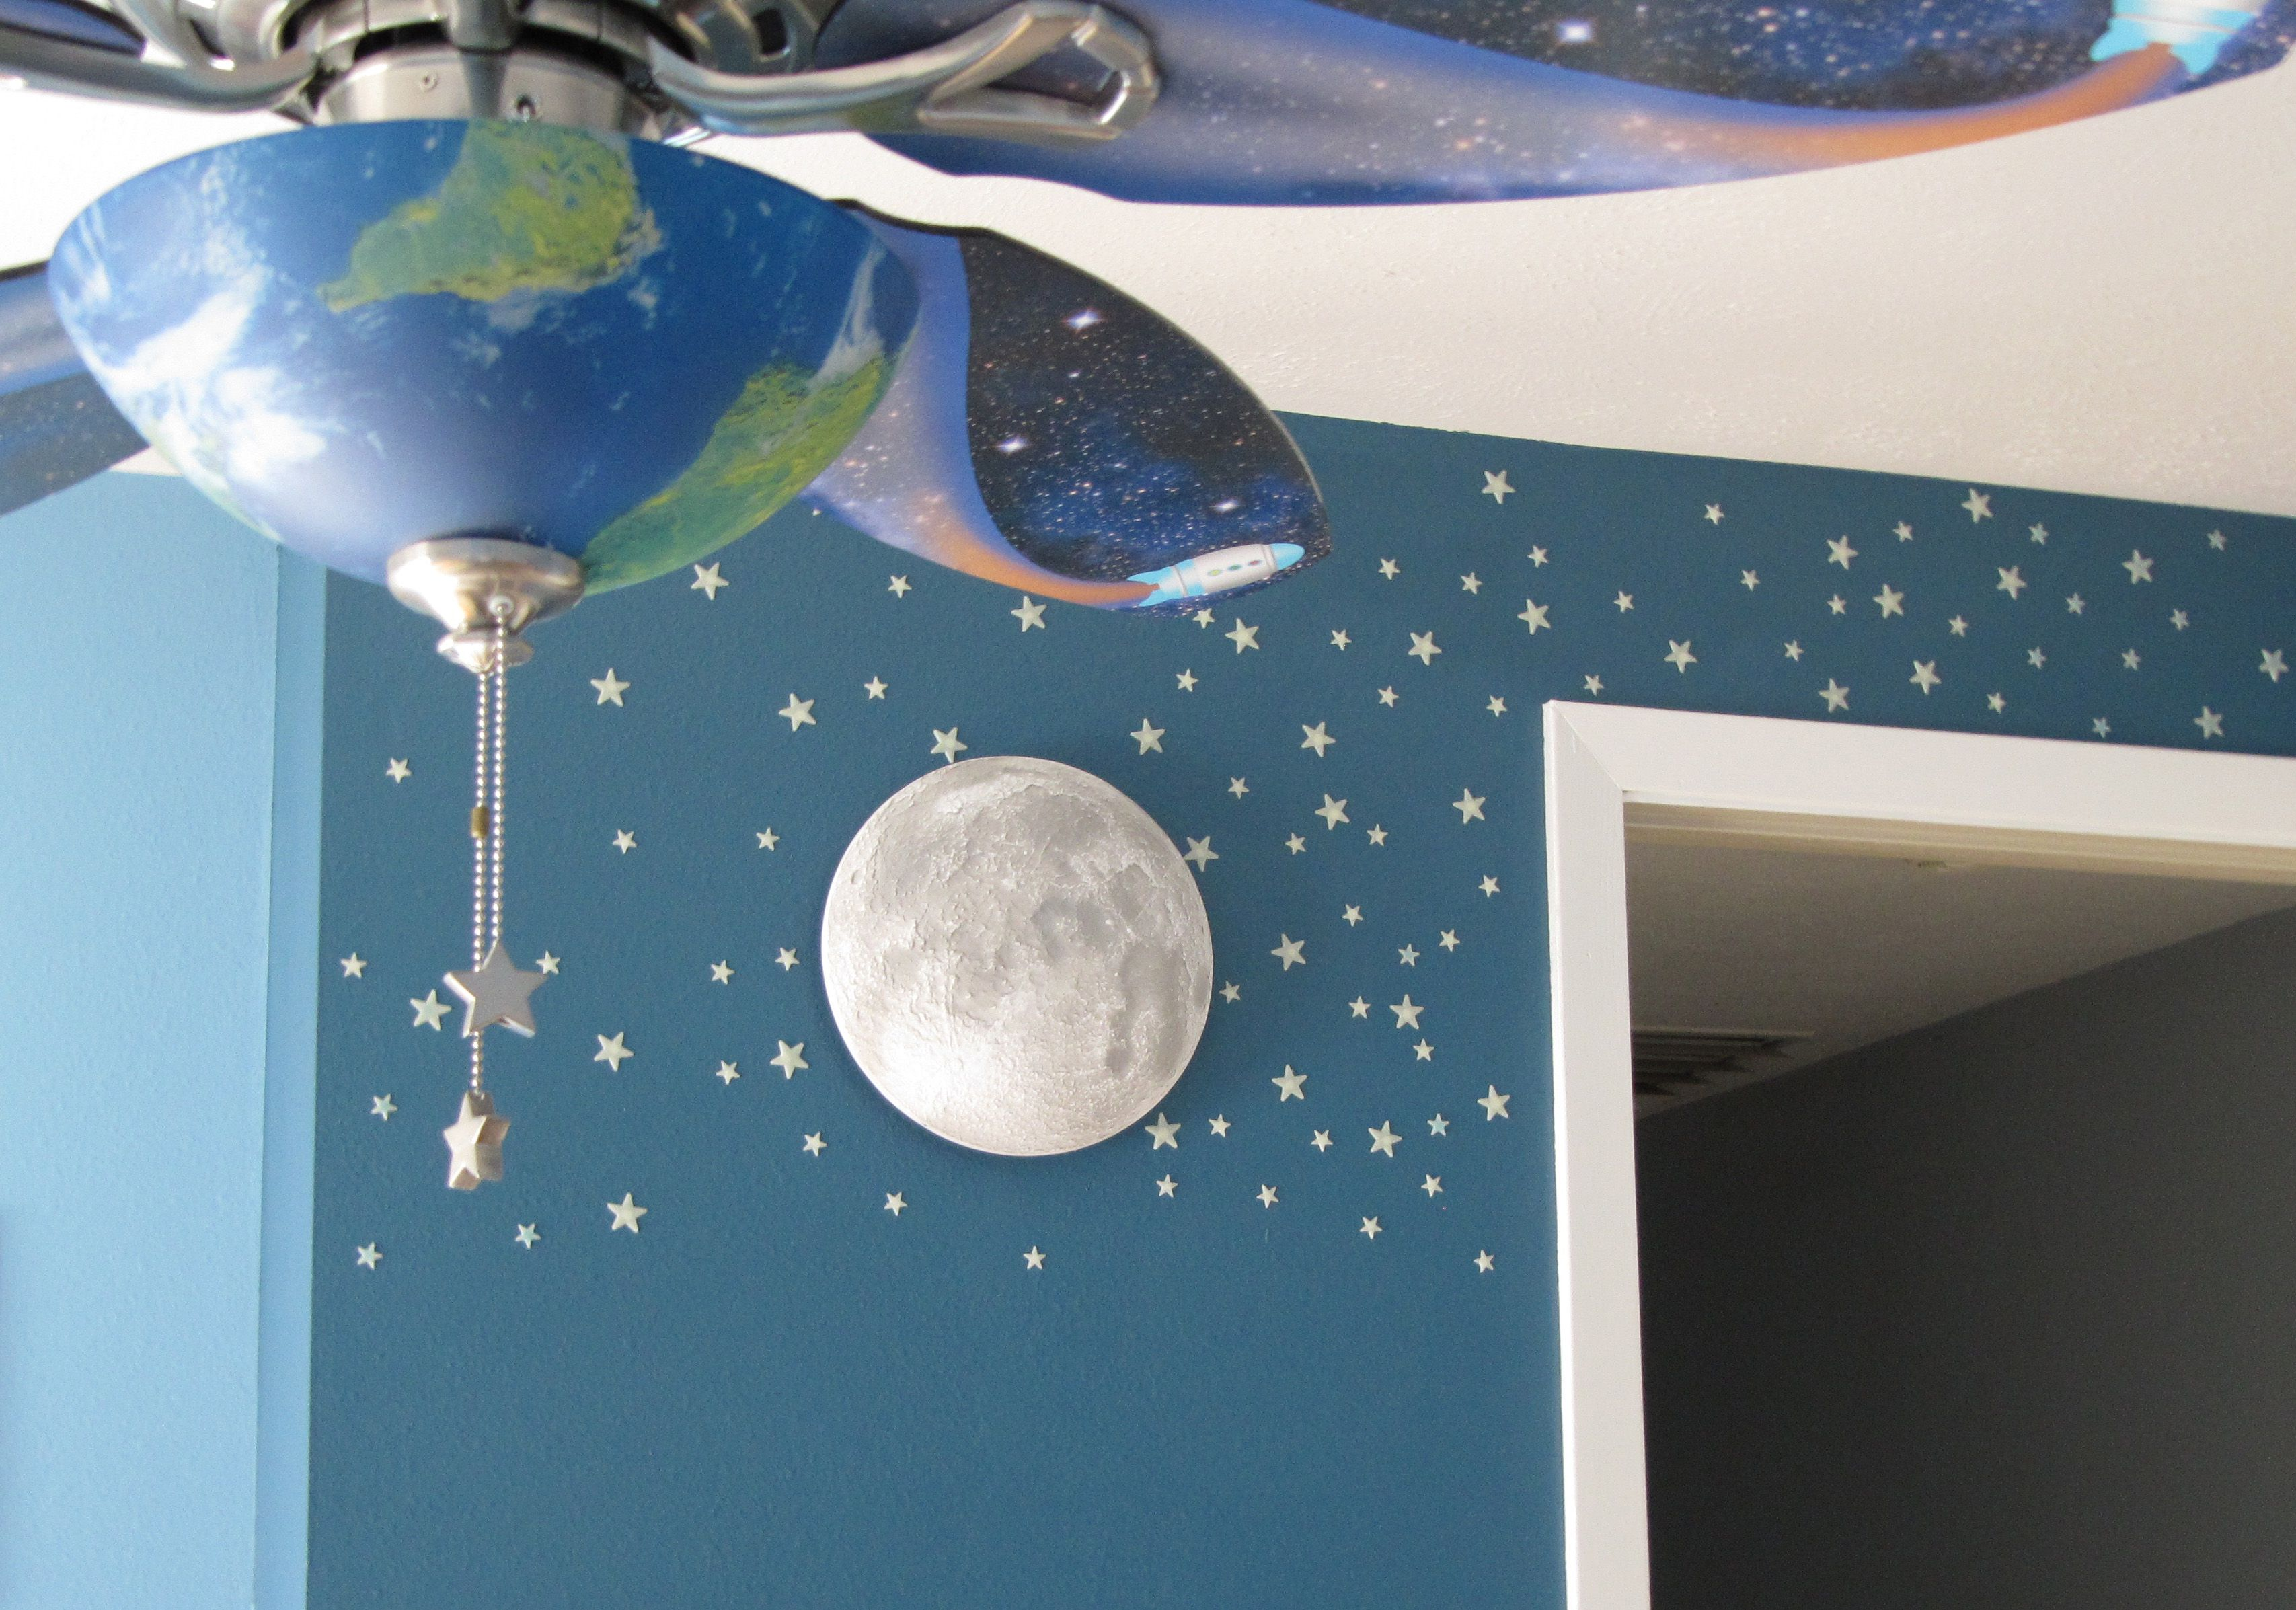 We have this moon and this fan ke the stars on the wall